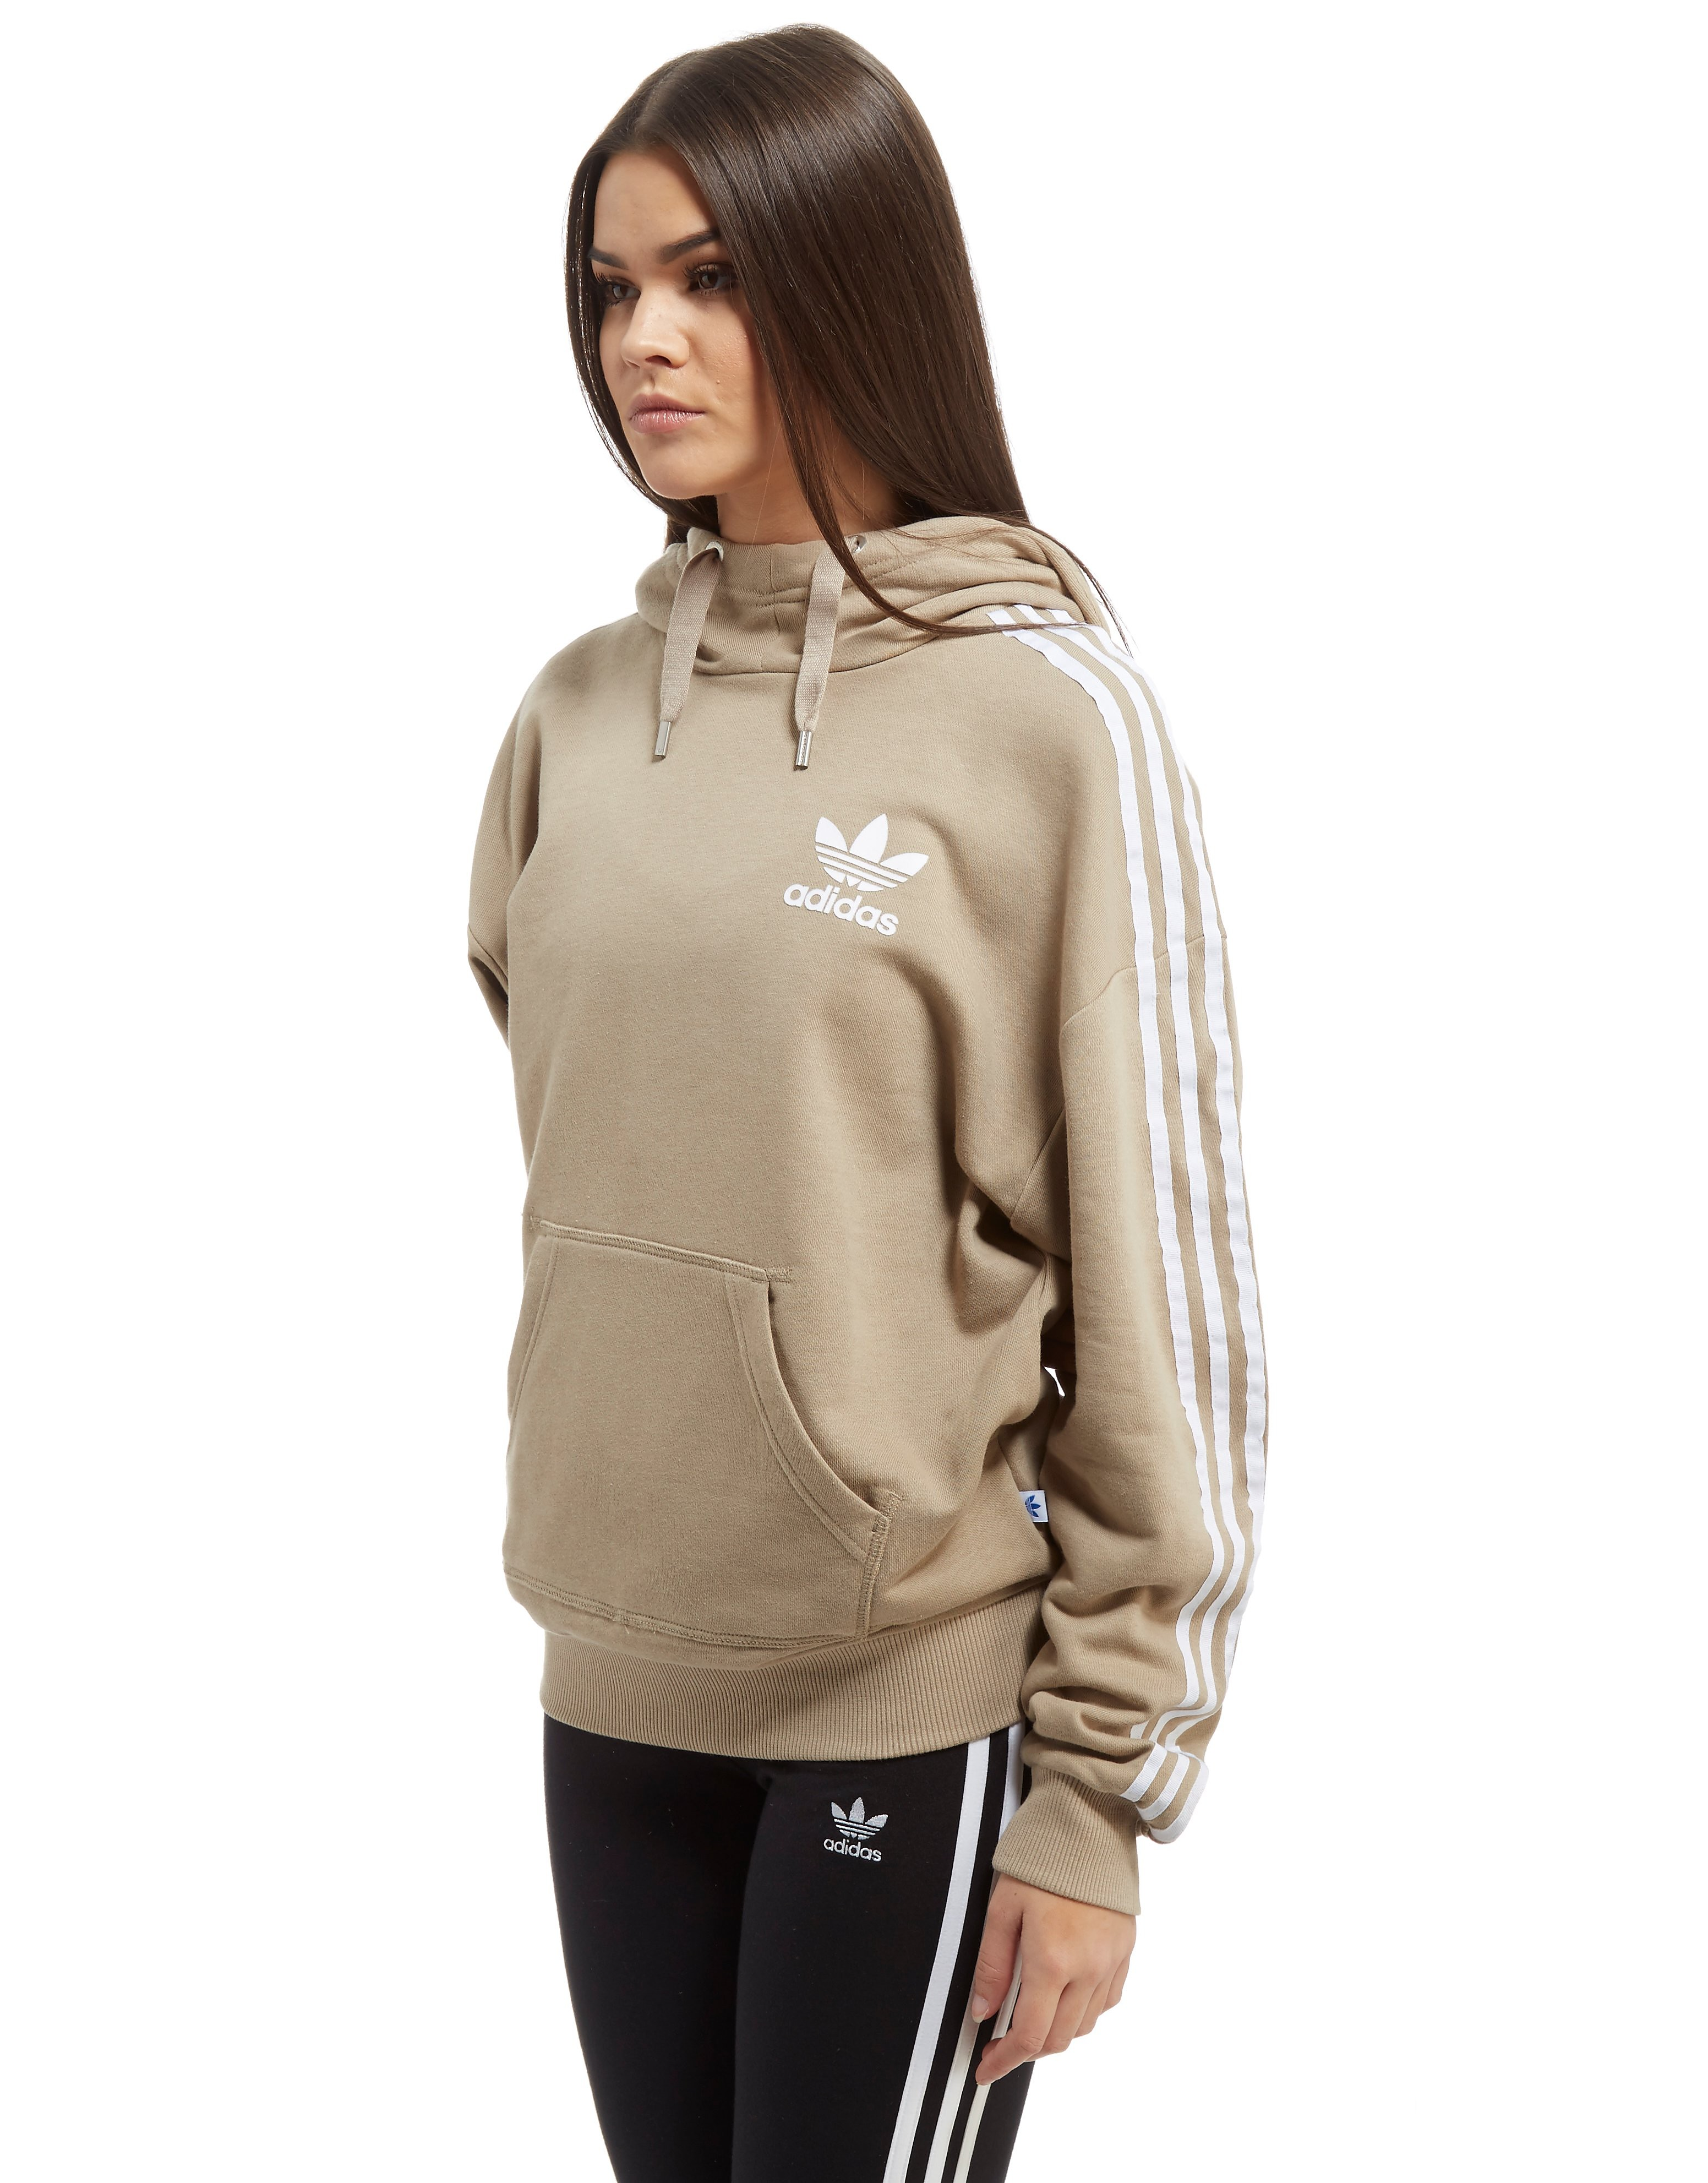 adidas Originals 3-Stripes Overhead Hoodie